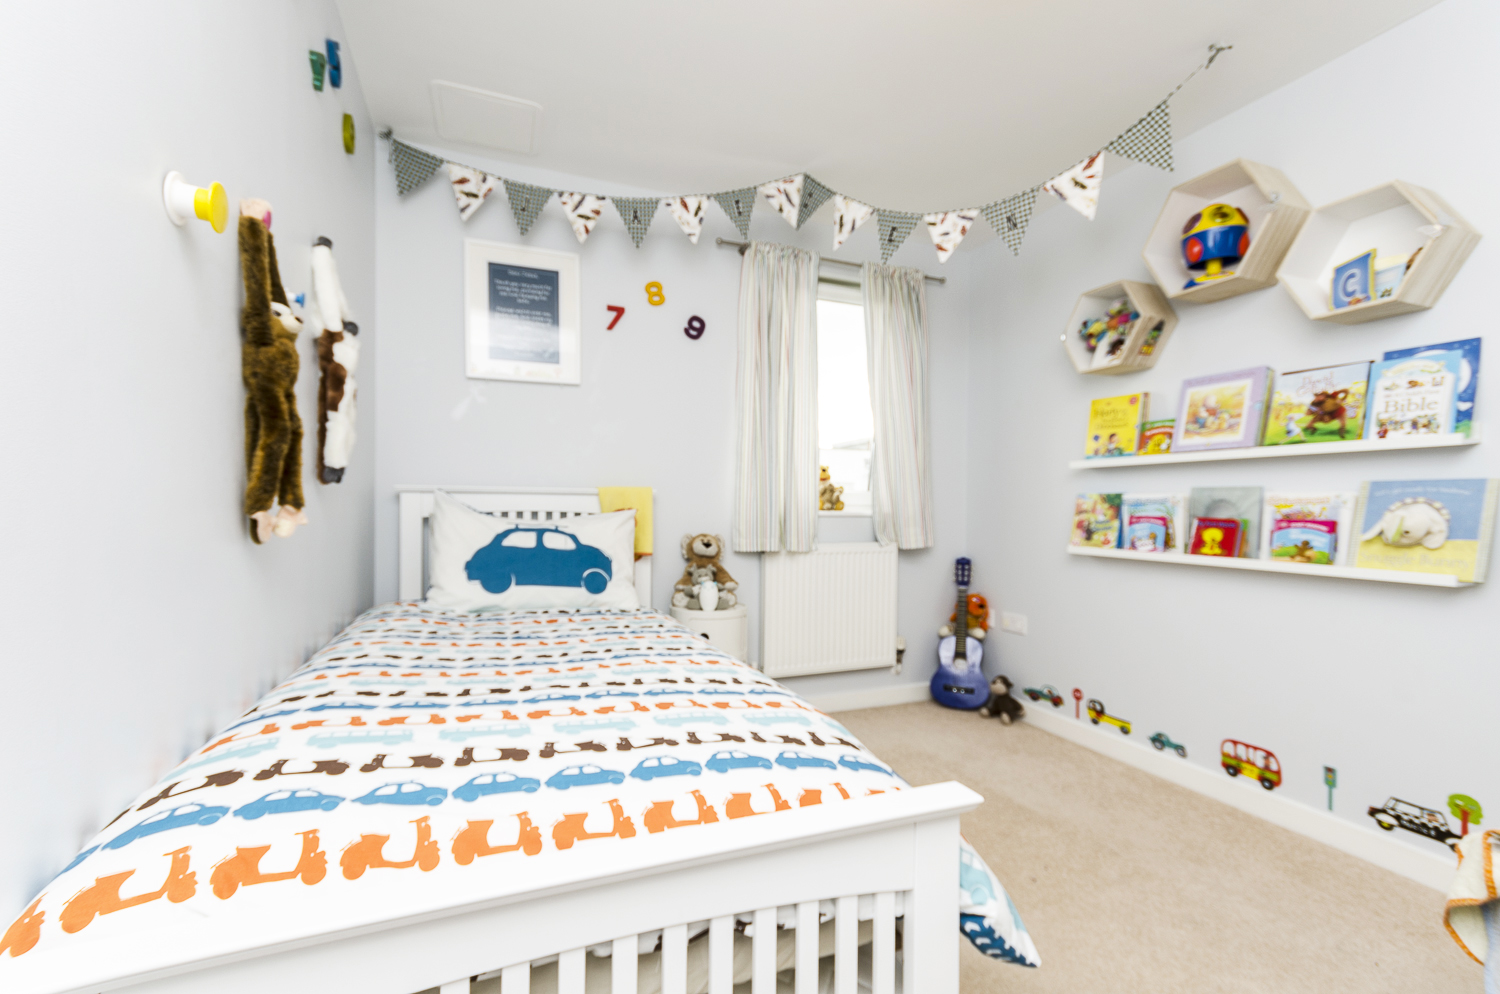 Kids Bedroom Theme Ideas & Decor On A Budget | ContractorCulture